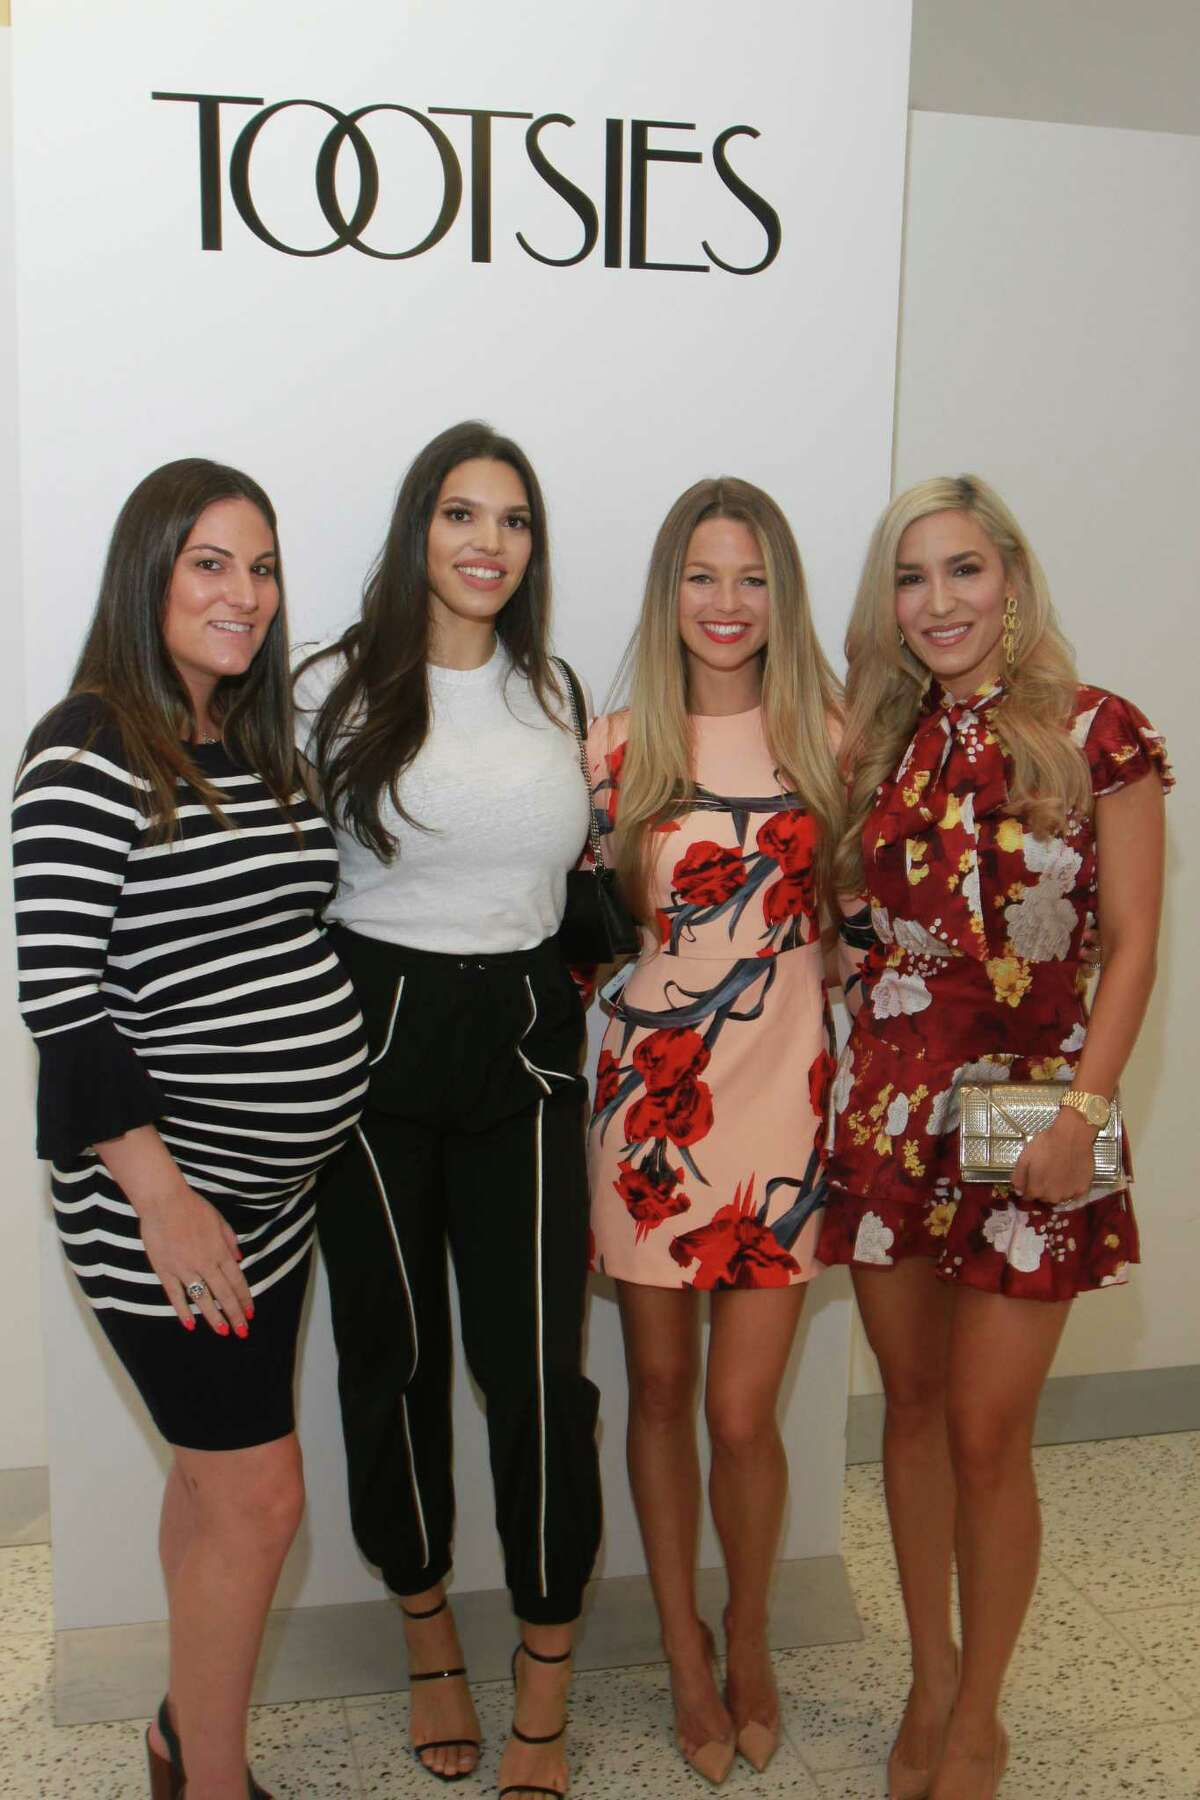 Sports reporter Allie LaForce (second from right)co-hosted a luncheon at Tootsies to help cure Huntington Diseasewith her husband and Astros pitcher Joe Smith. Fellow Astros wives Stephanie Peacock, Charlise Springerand Kara McCullers attended in support of the cause.